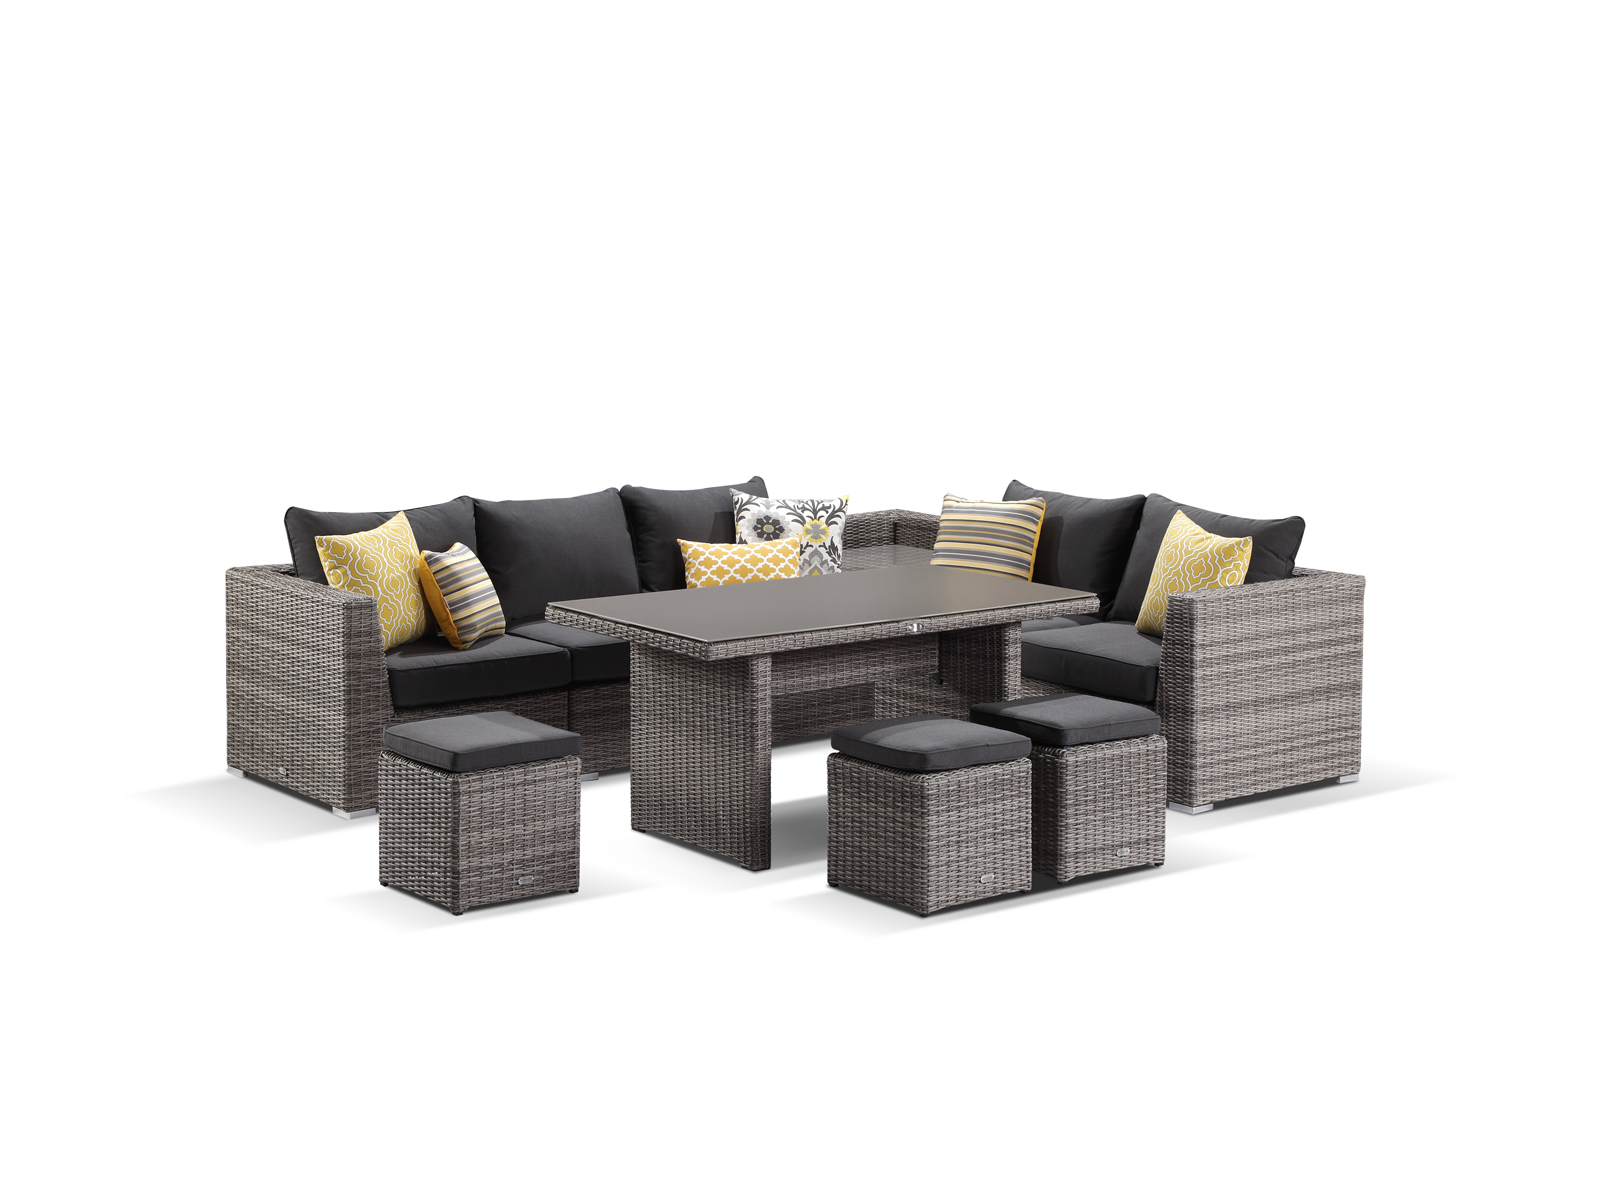 Moonscape teak dining settings with all of our outdoor furniture